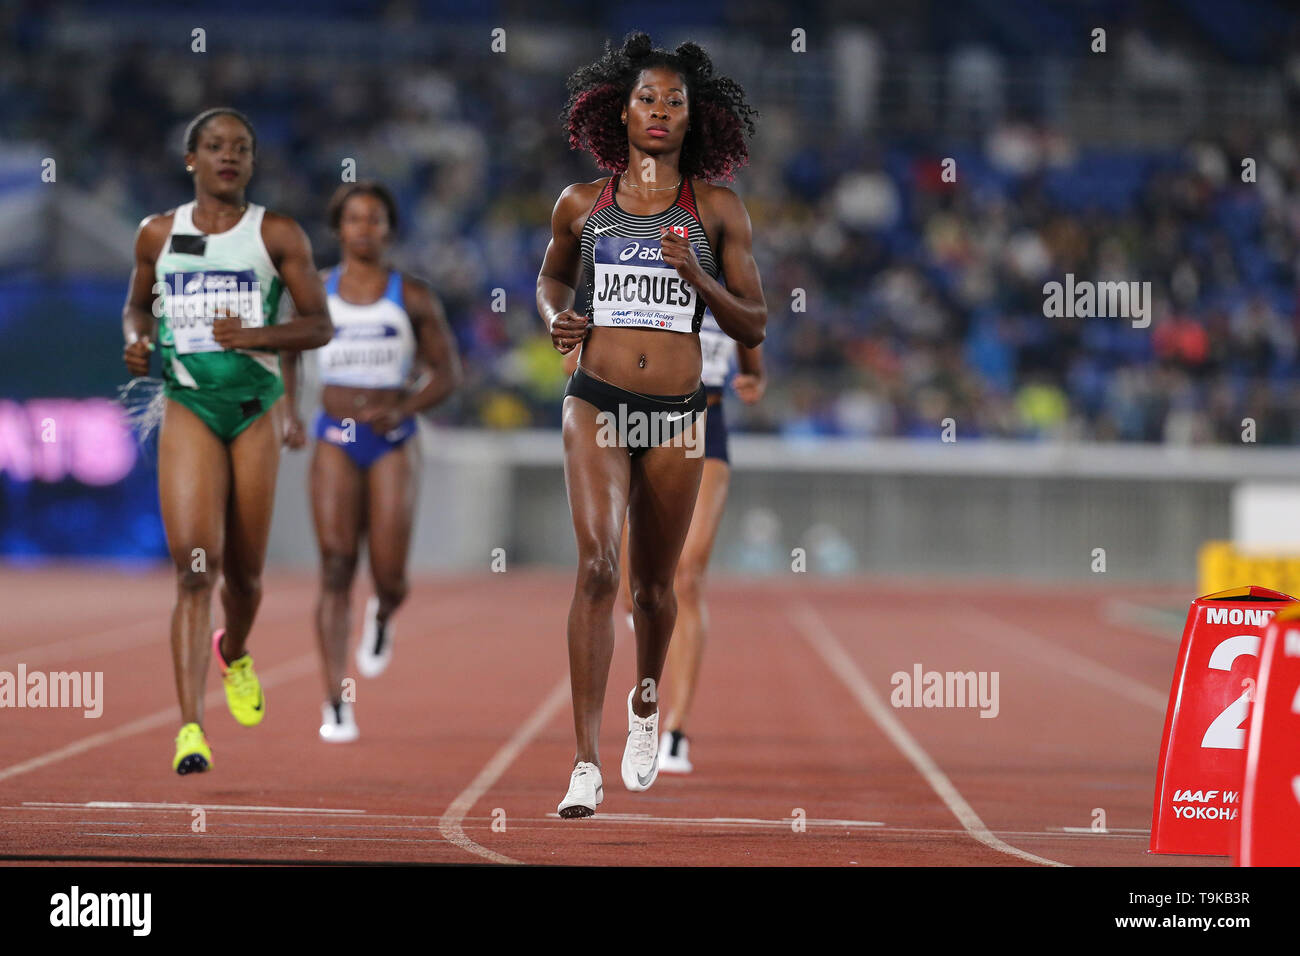 YOKOHAMA, JAPAN - MAY 10: Farah Jacques of Canada during Day 1 of the 2019 IAAF World Relay Championships at the Nissan Stadium on Saturday May 11, 2019 in Yokohama, Japan. (Photo by Roger Sedres for the IAAF) - Stock Image